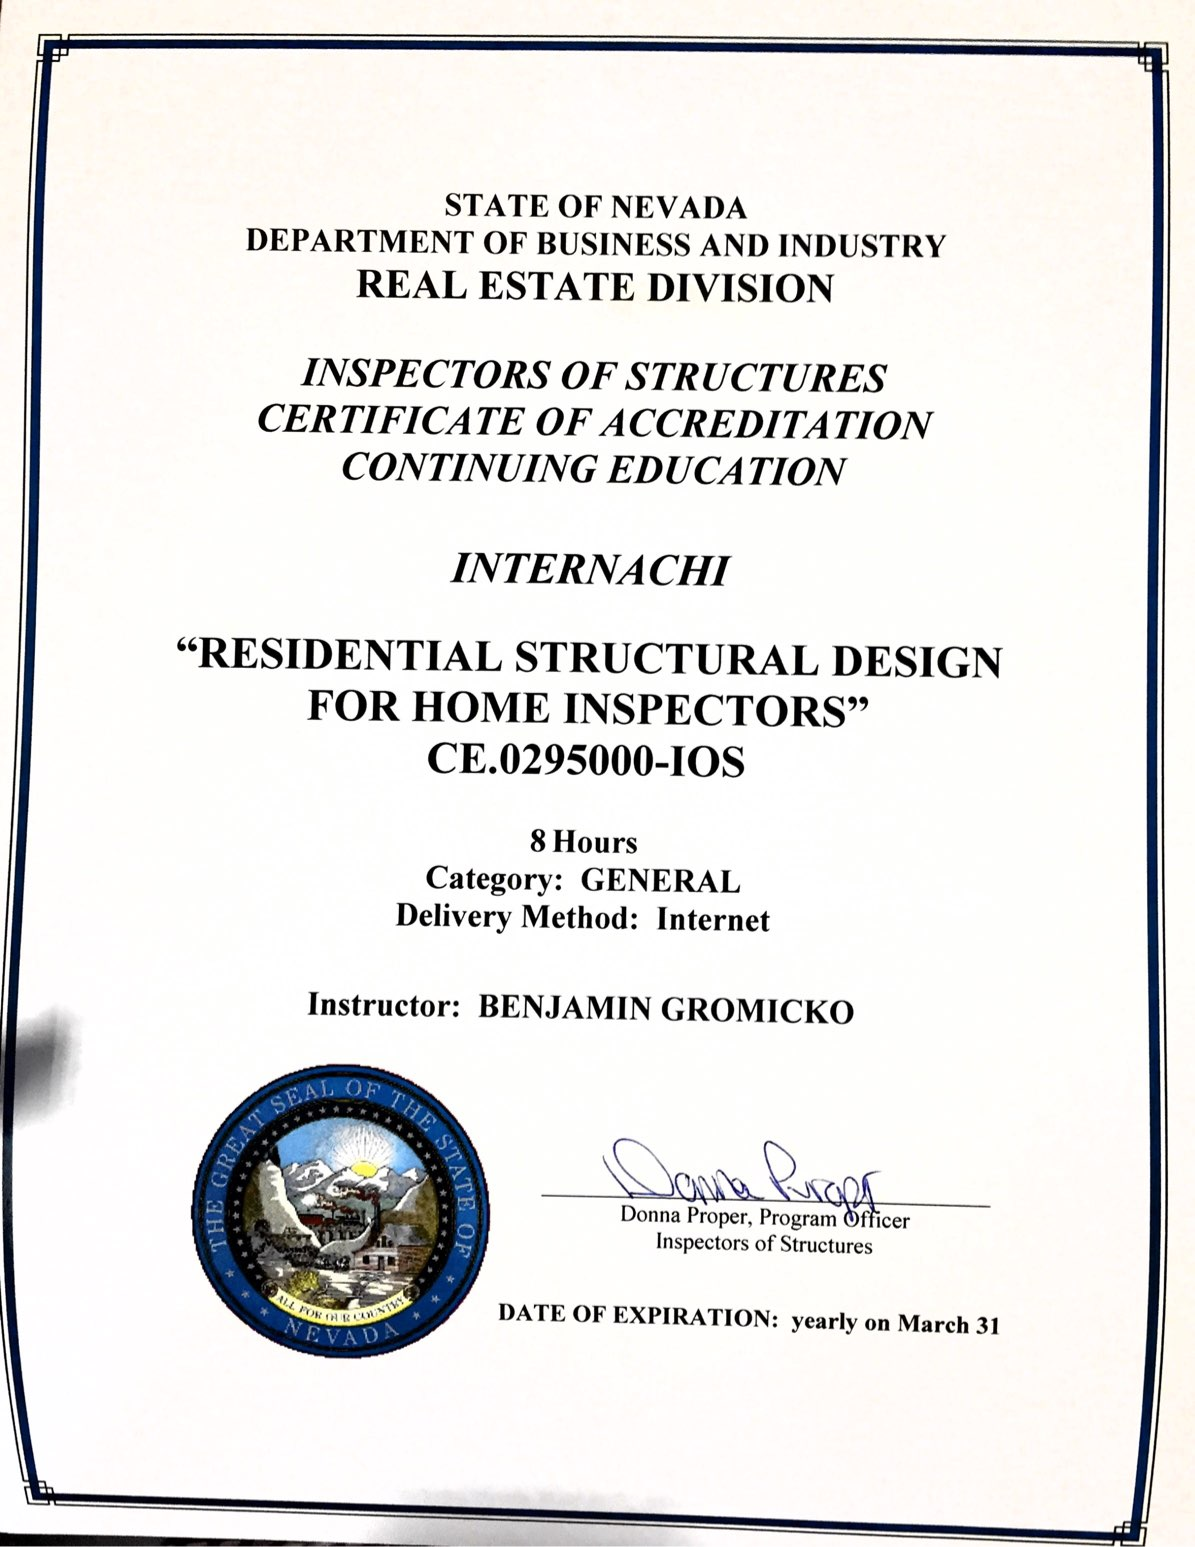 How to become a certified home inspector in nevada internachi view approval of residential structural design for home inspectors course 1betcityfo Gallery